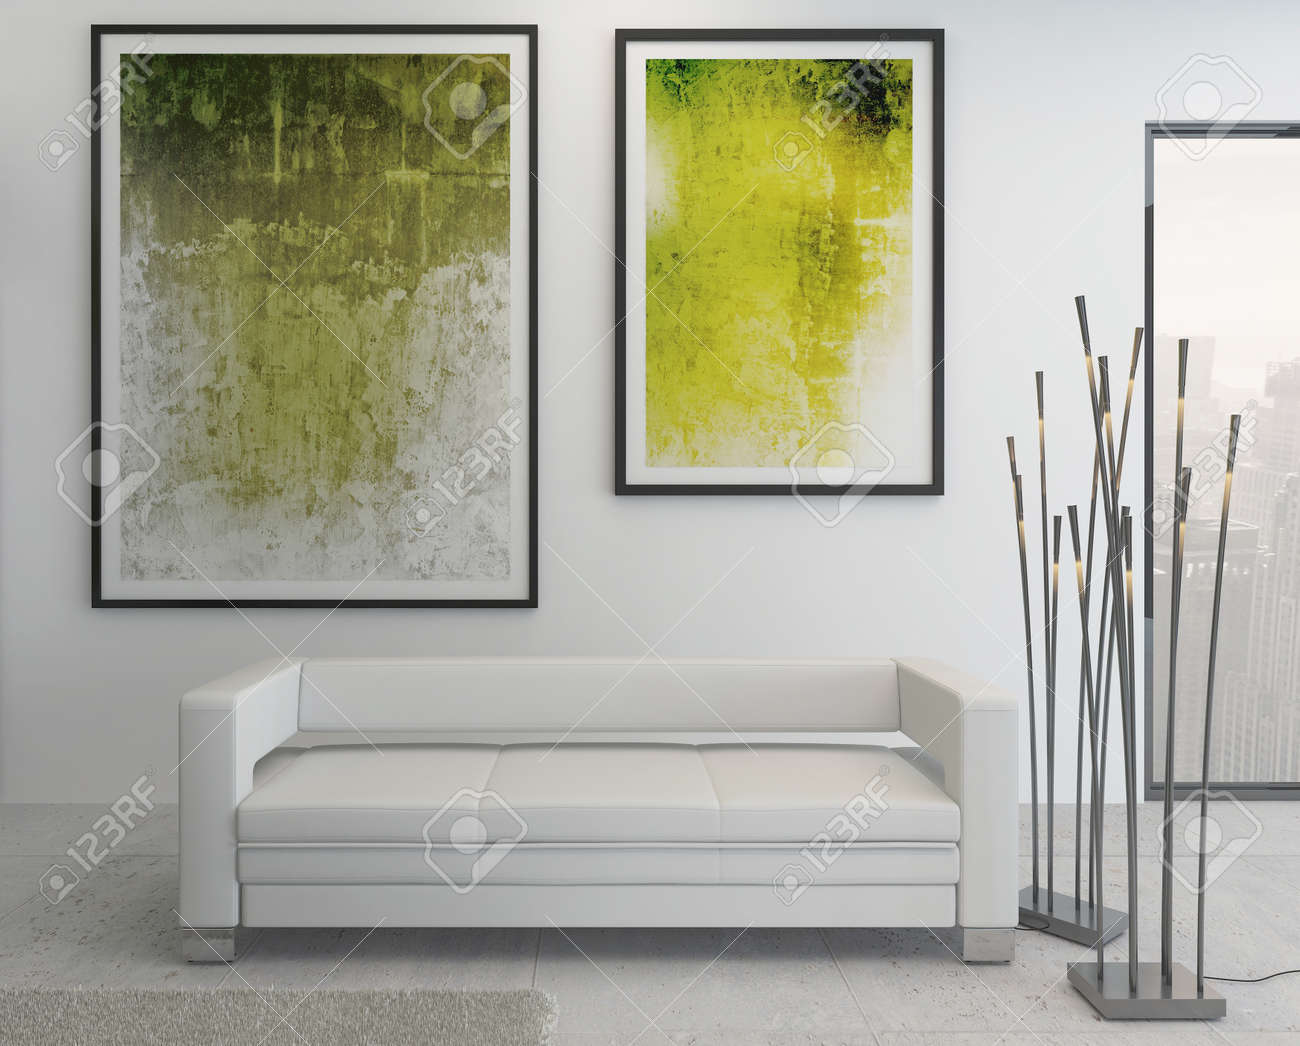 Modern Living Room Paintings Modern Living Room Interior With Green Paintings On Wall Stock